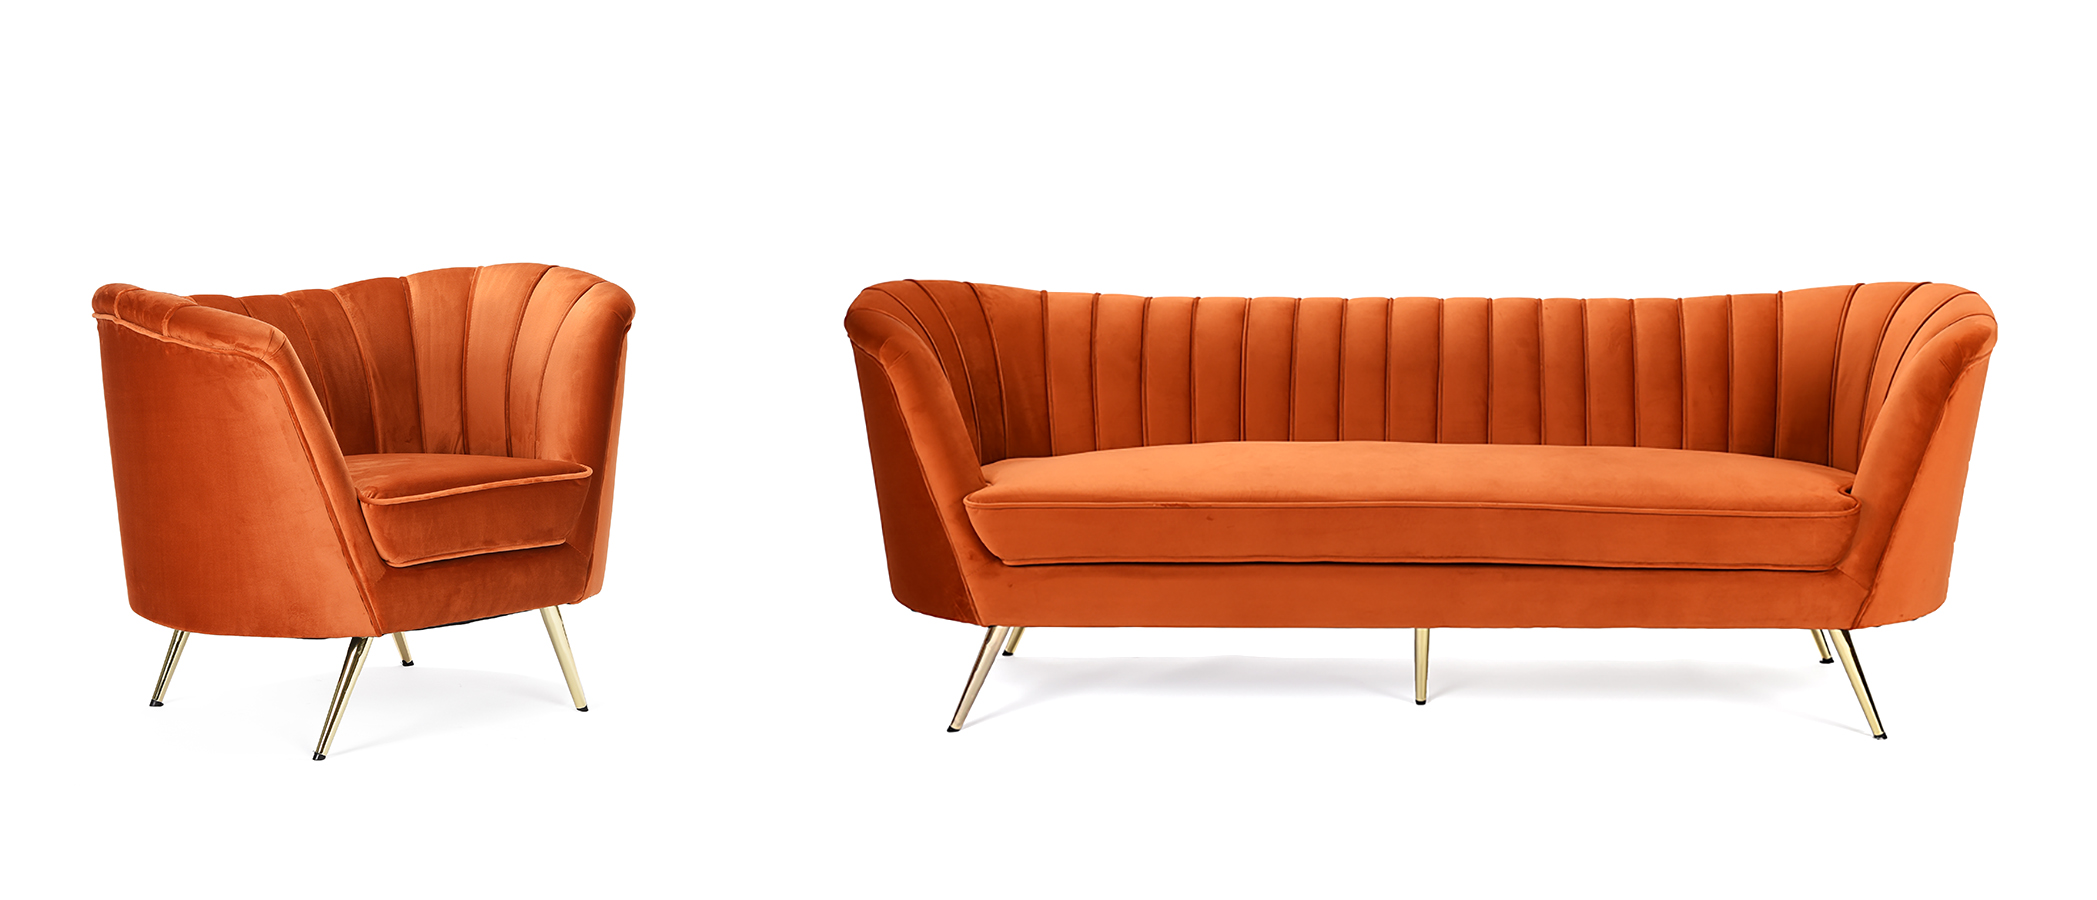 Event Effects Orange Sofa & Chair